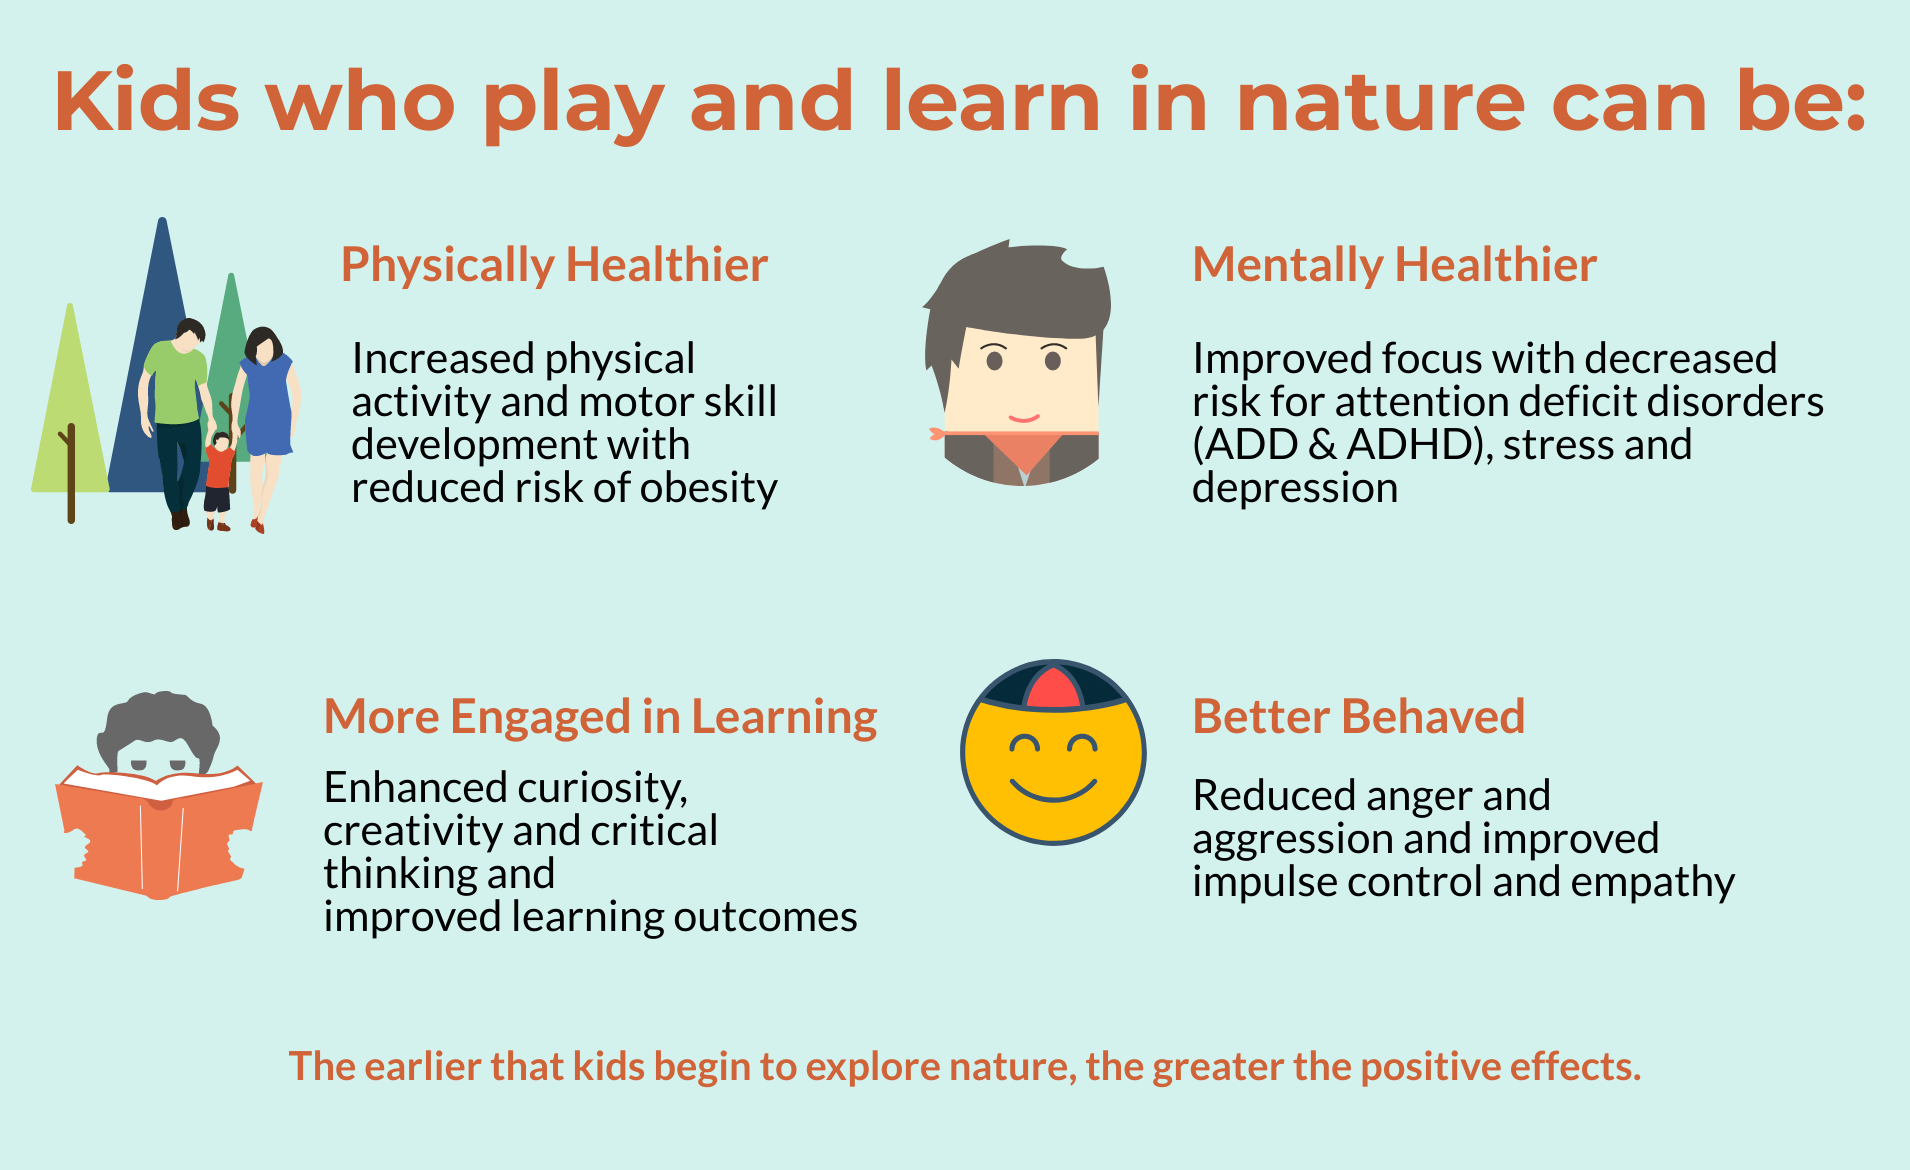 Graphic to explain that kids who play in nature can be physically and mentally healthier, more engaged in learning and better behaved.